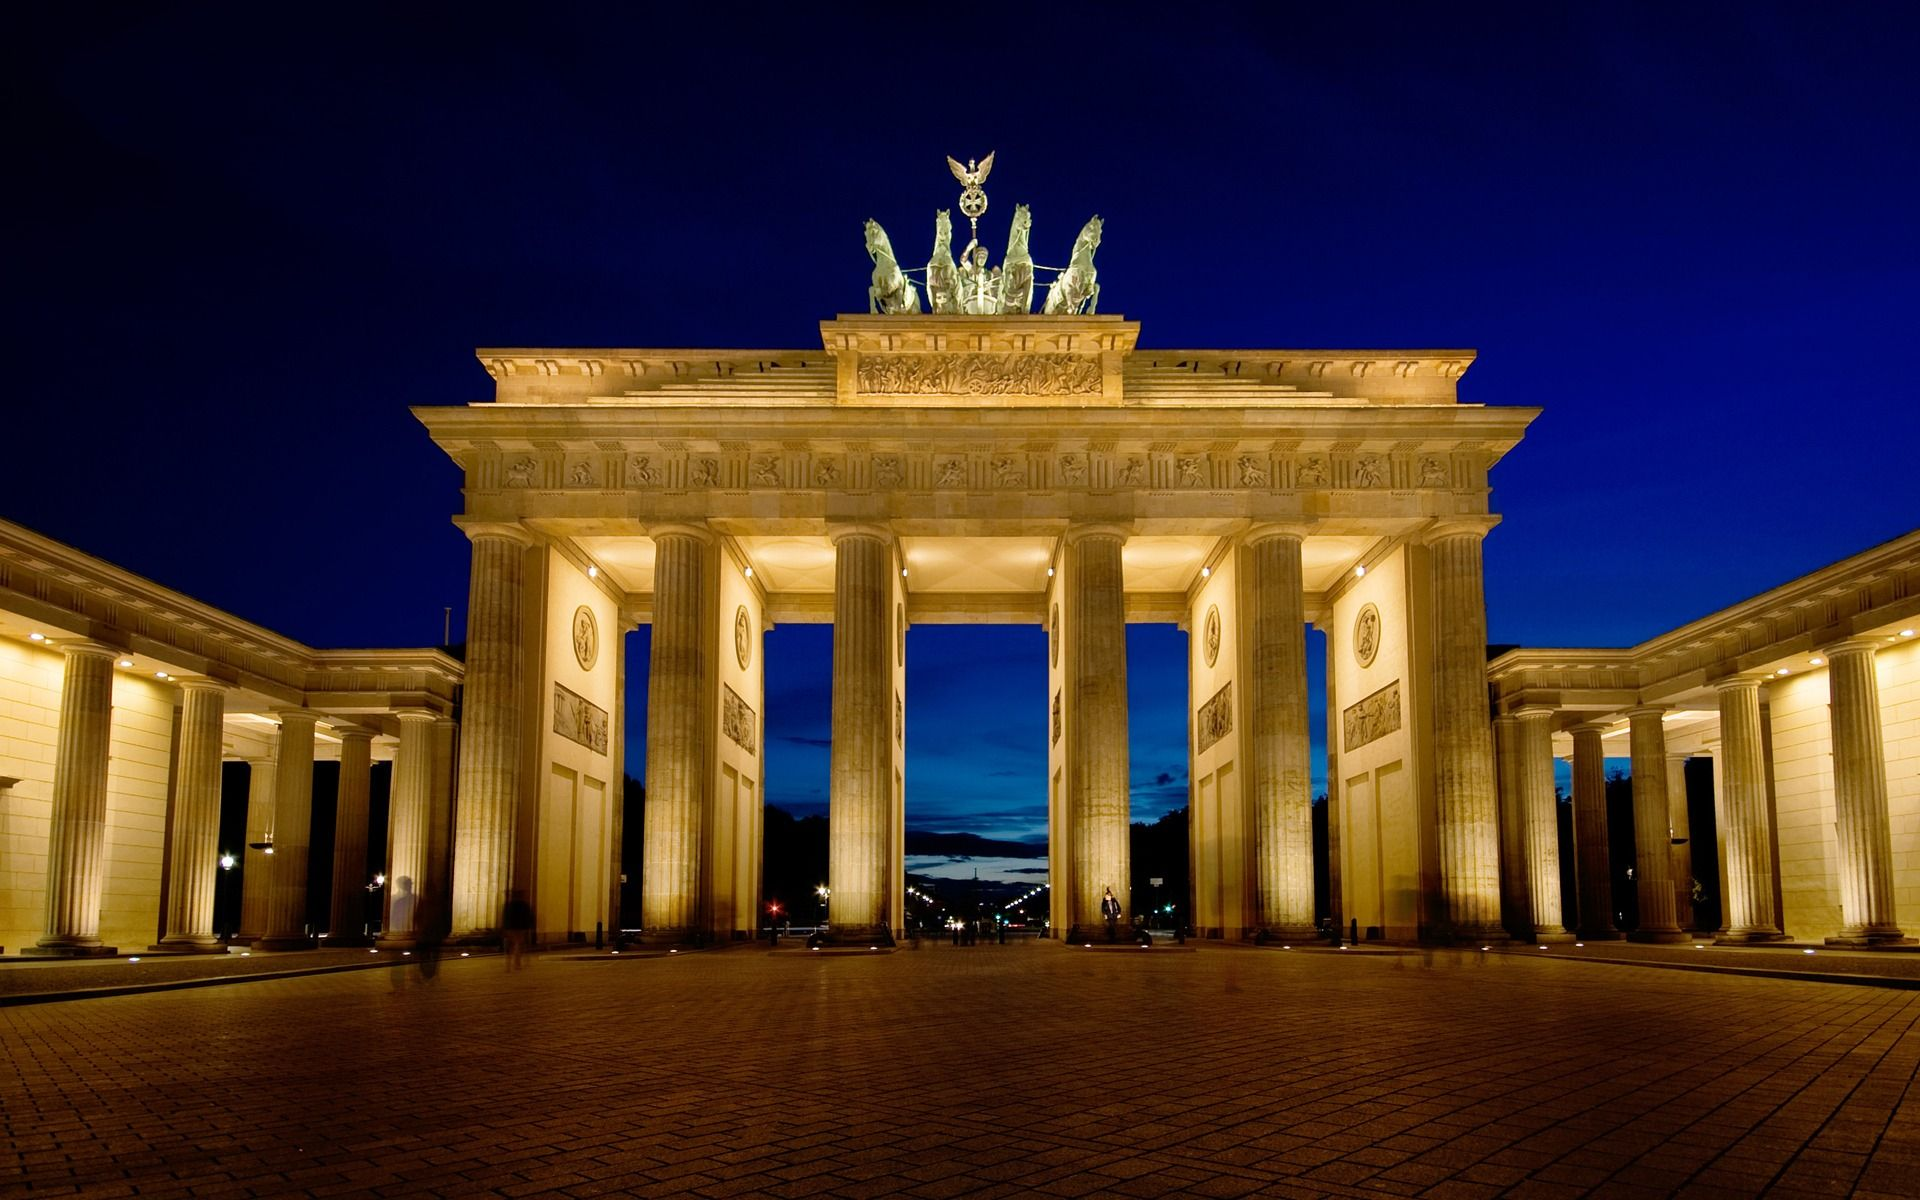 Study In Germany Affordable Living And Tuition 18months Stay Back Visa Excellent Job Opportunities Largest Econom Brandenburg Gate Berlin Germany Berlin City